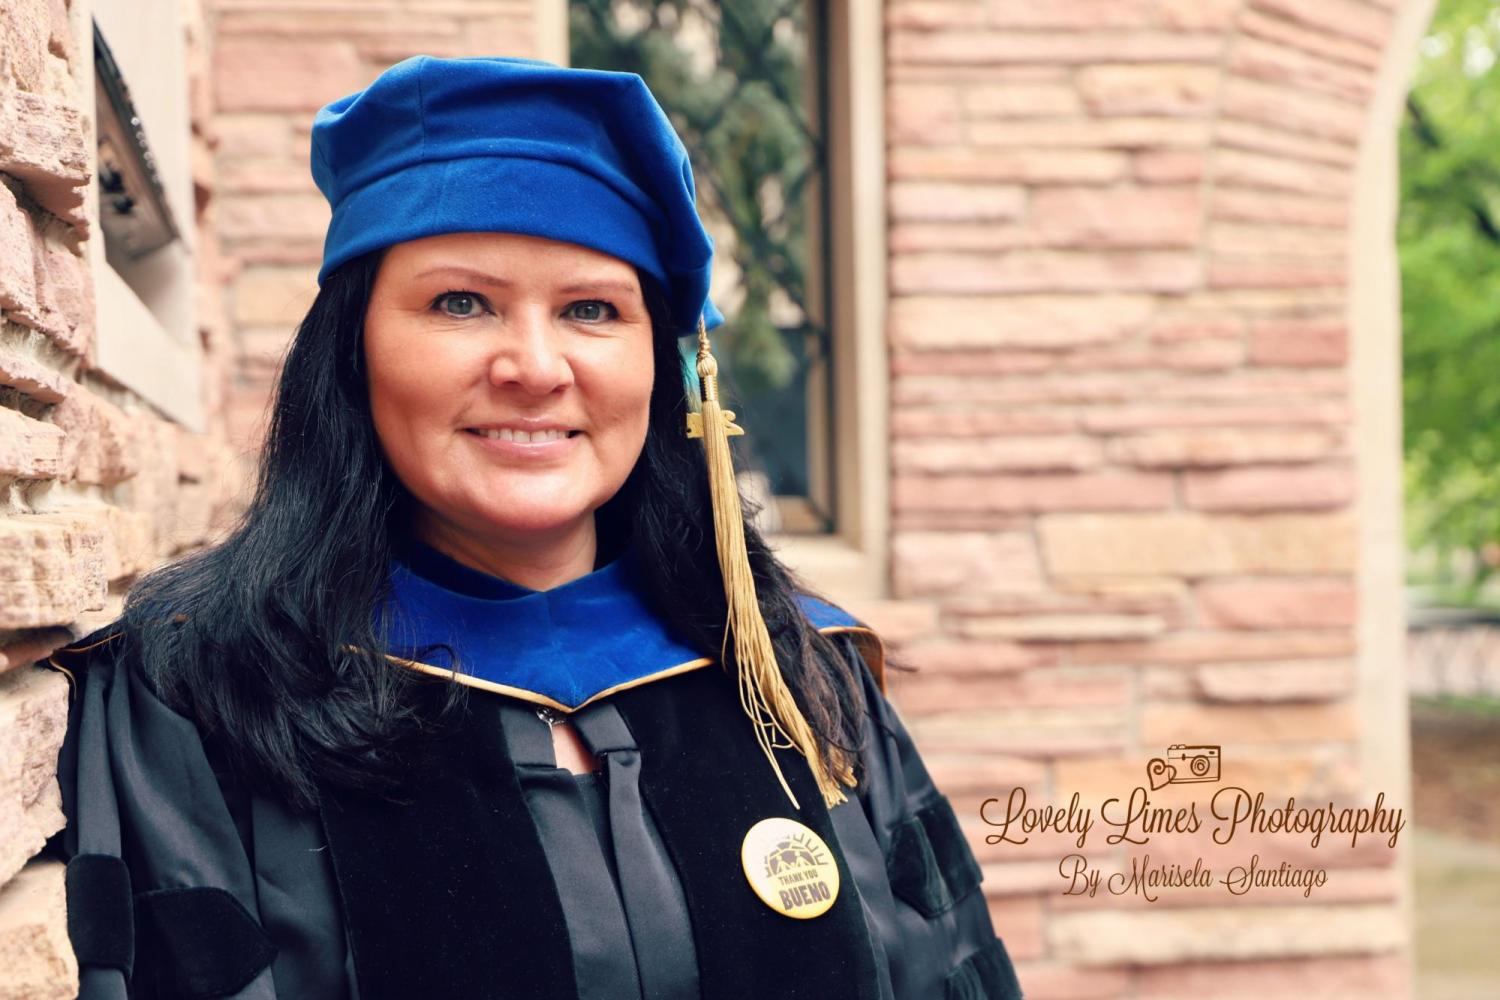 Clara Smith in doctoral regalia in front of the CU Boulder School of Education